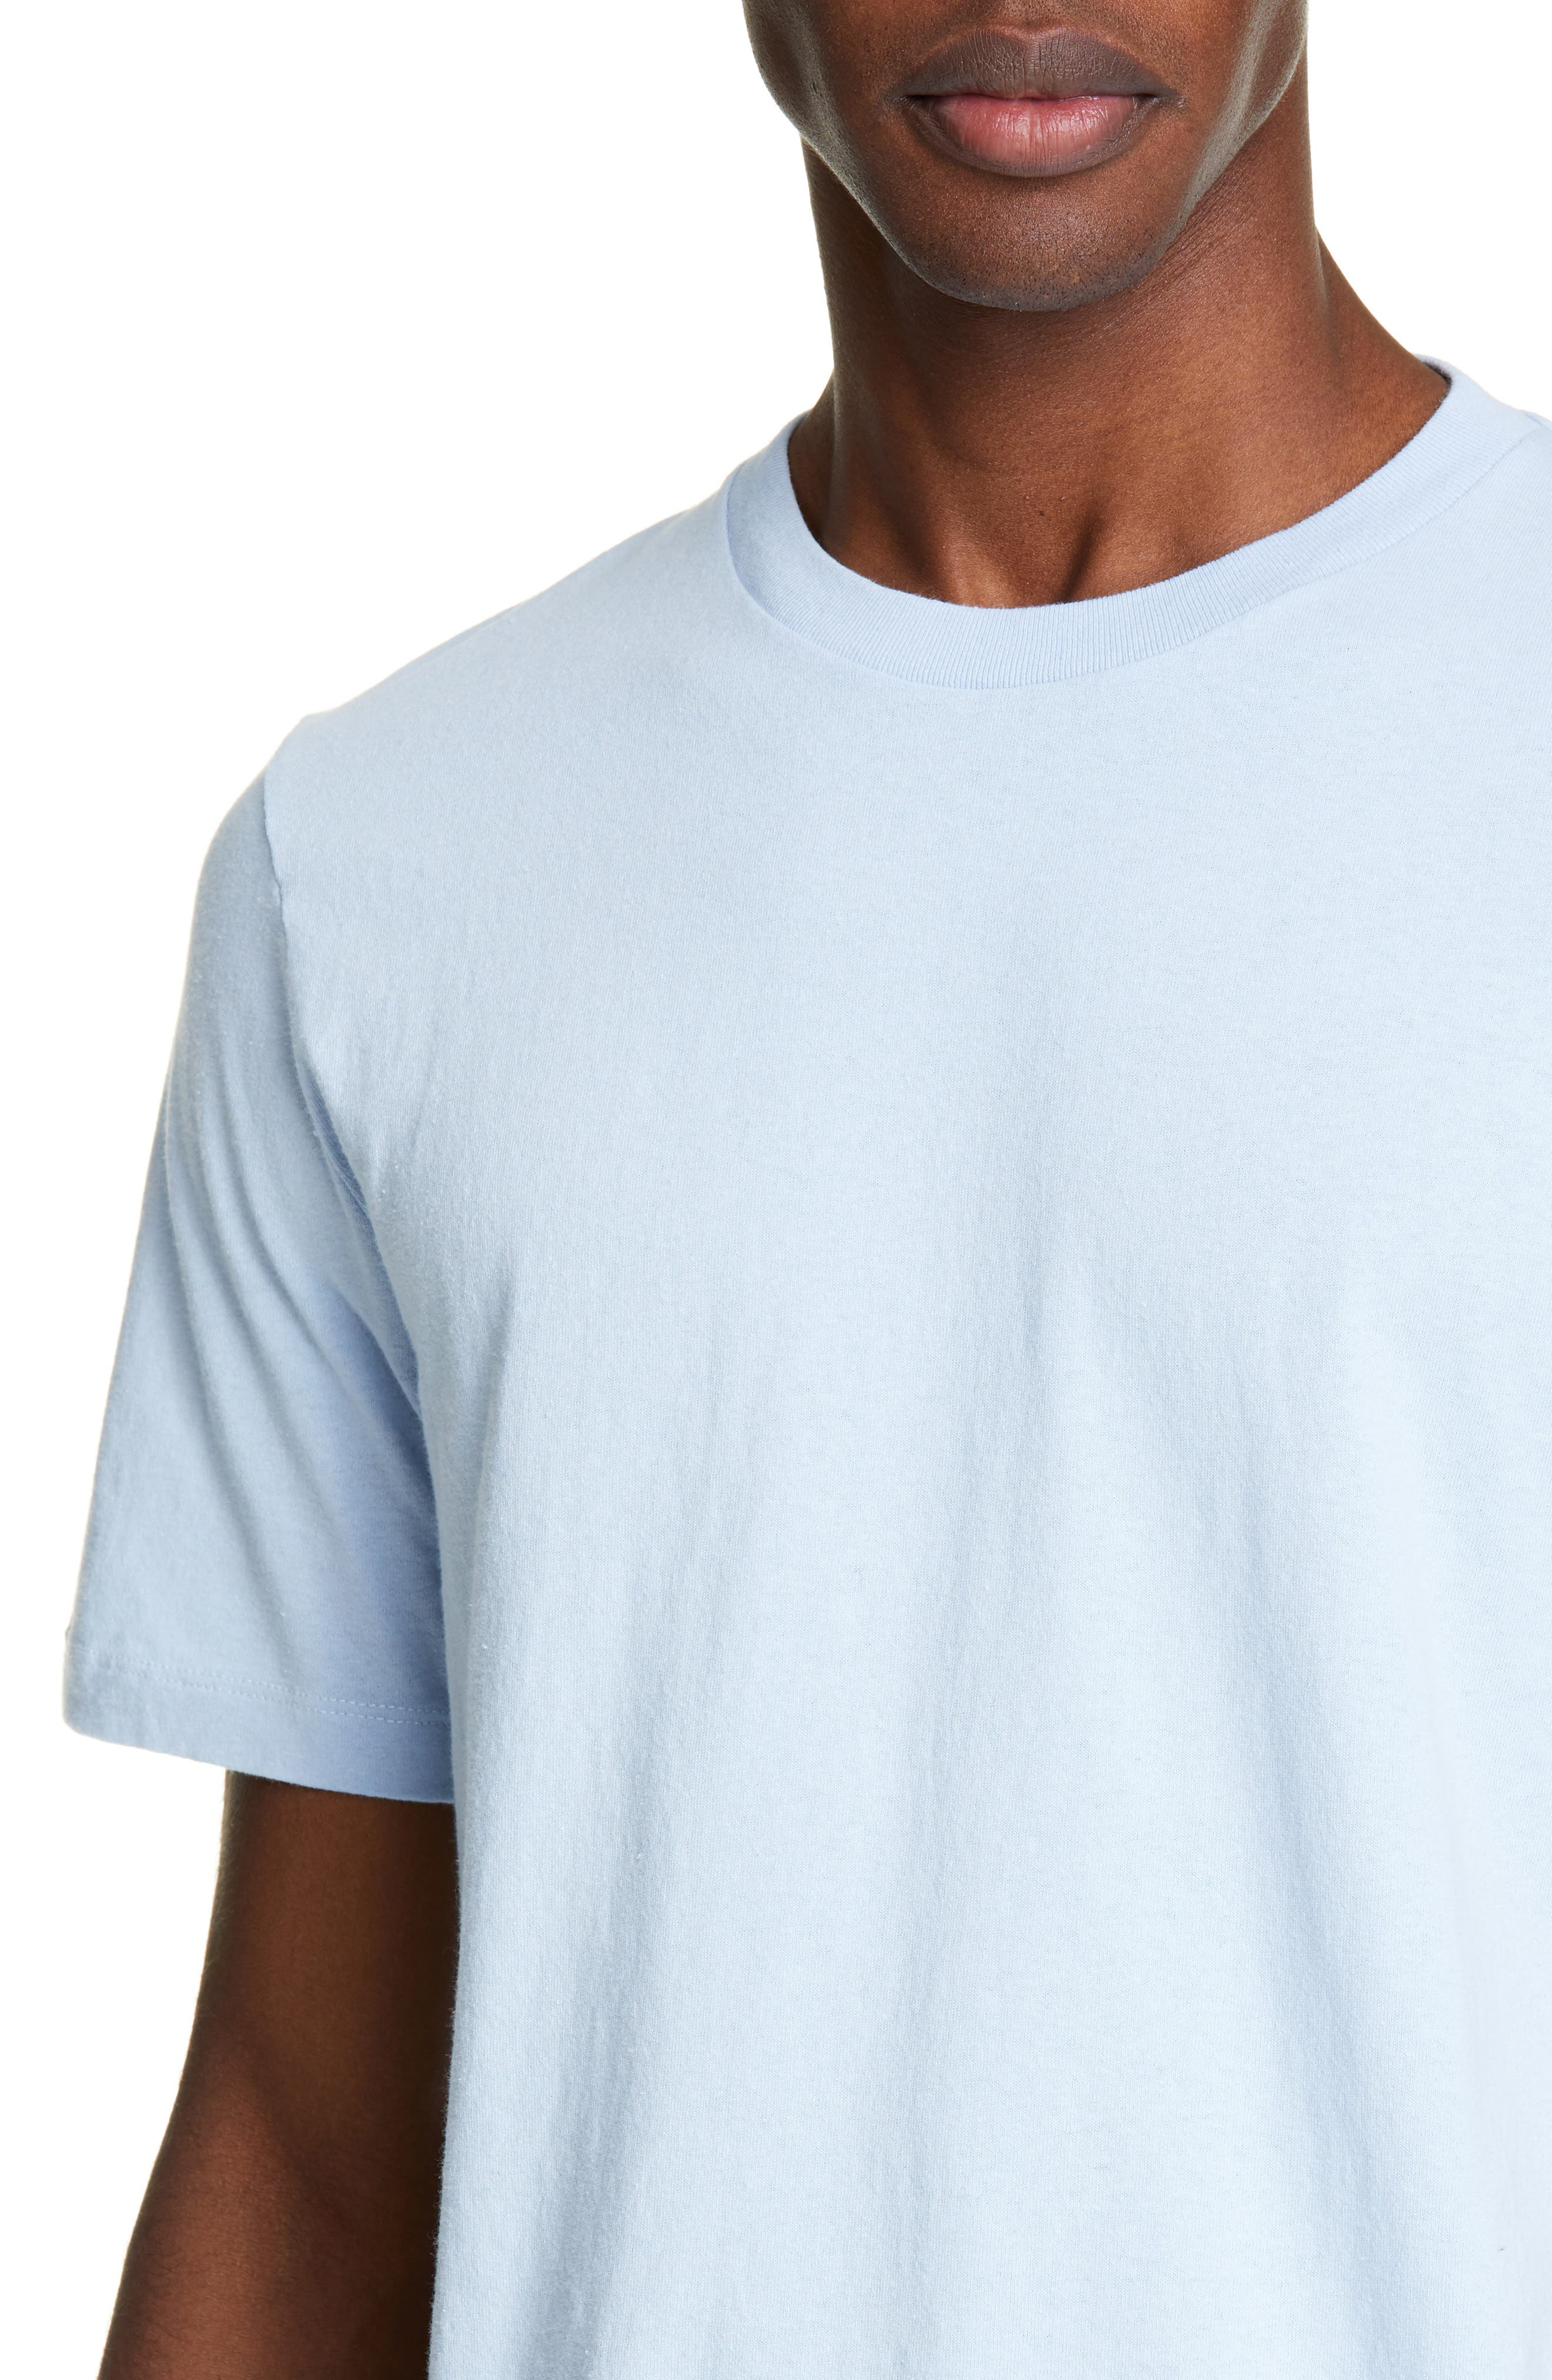 HELMUT LANG, Aviator T-Shirt, Alternate thumbnail 4, color, SKY